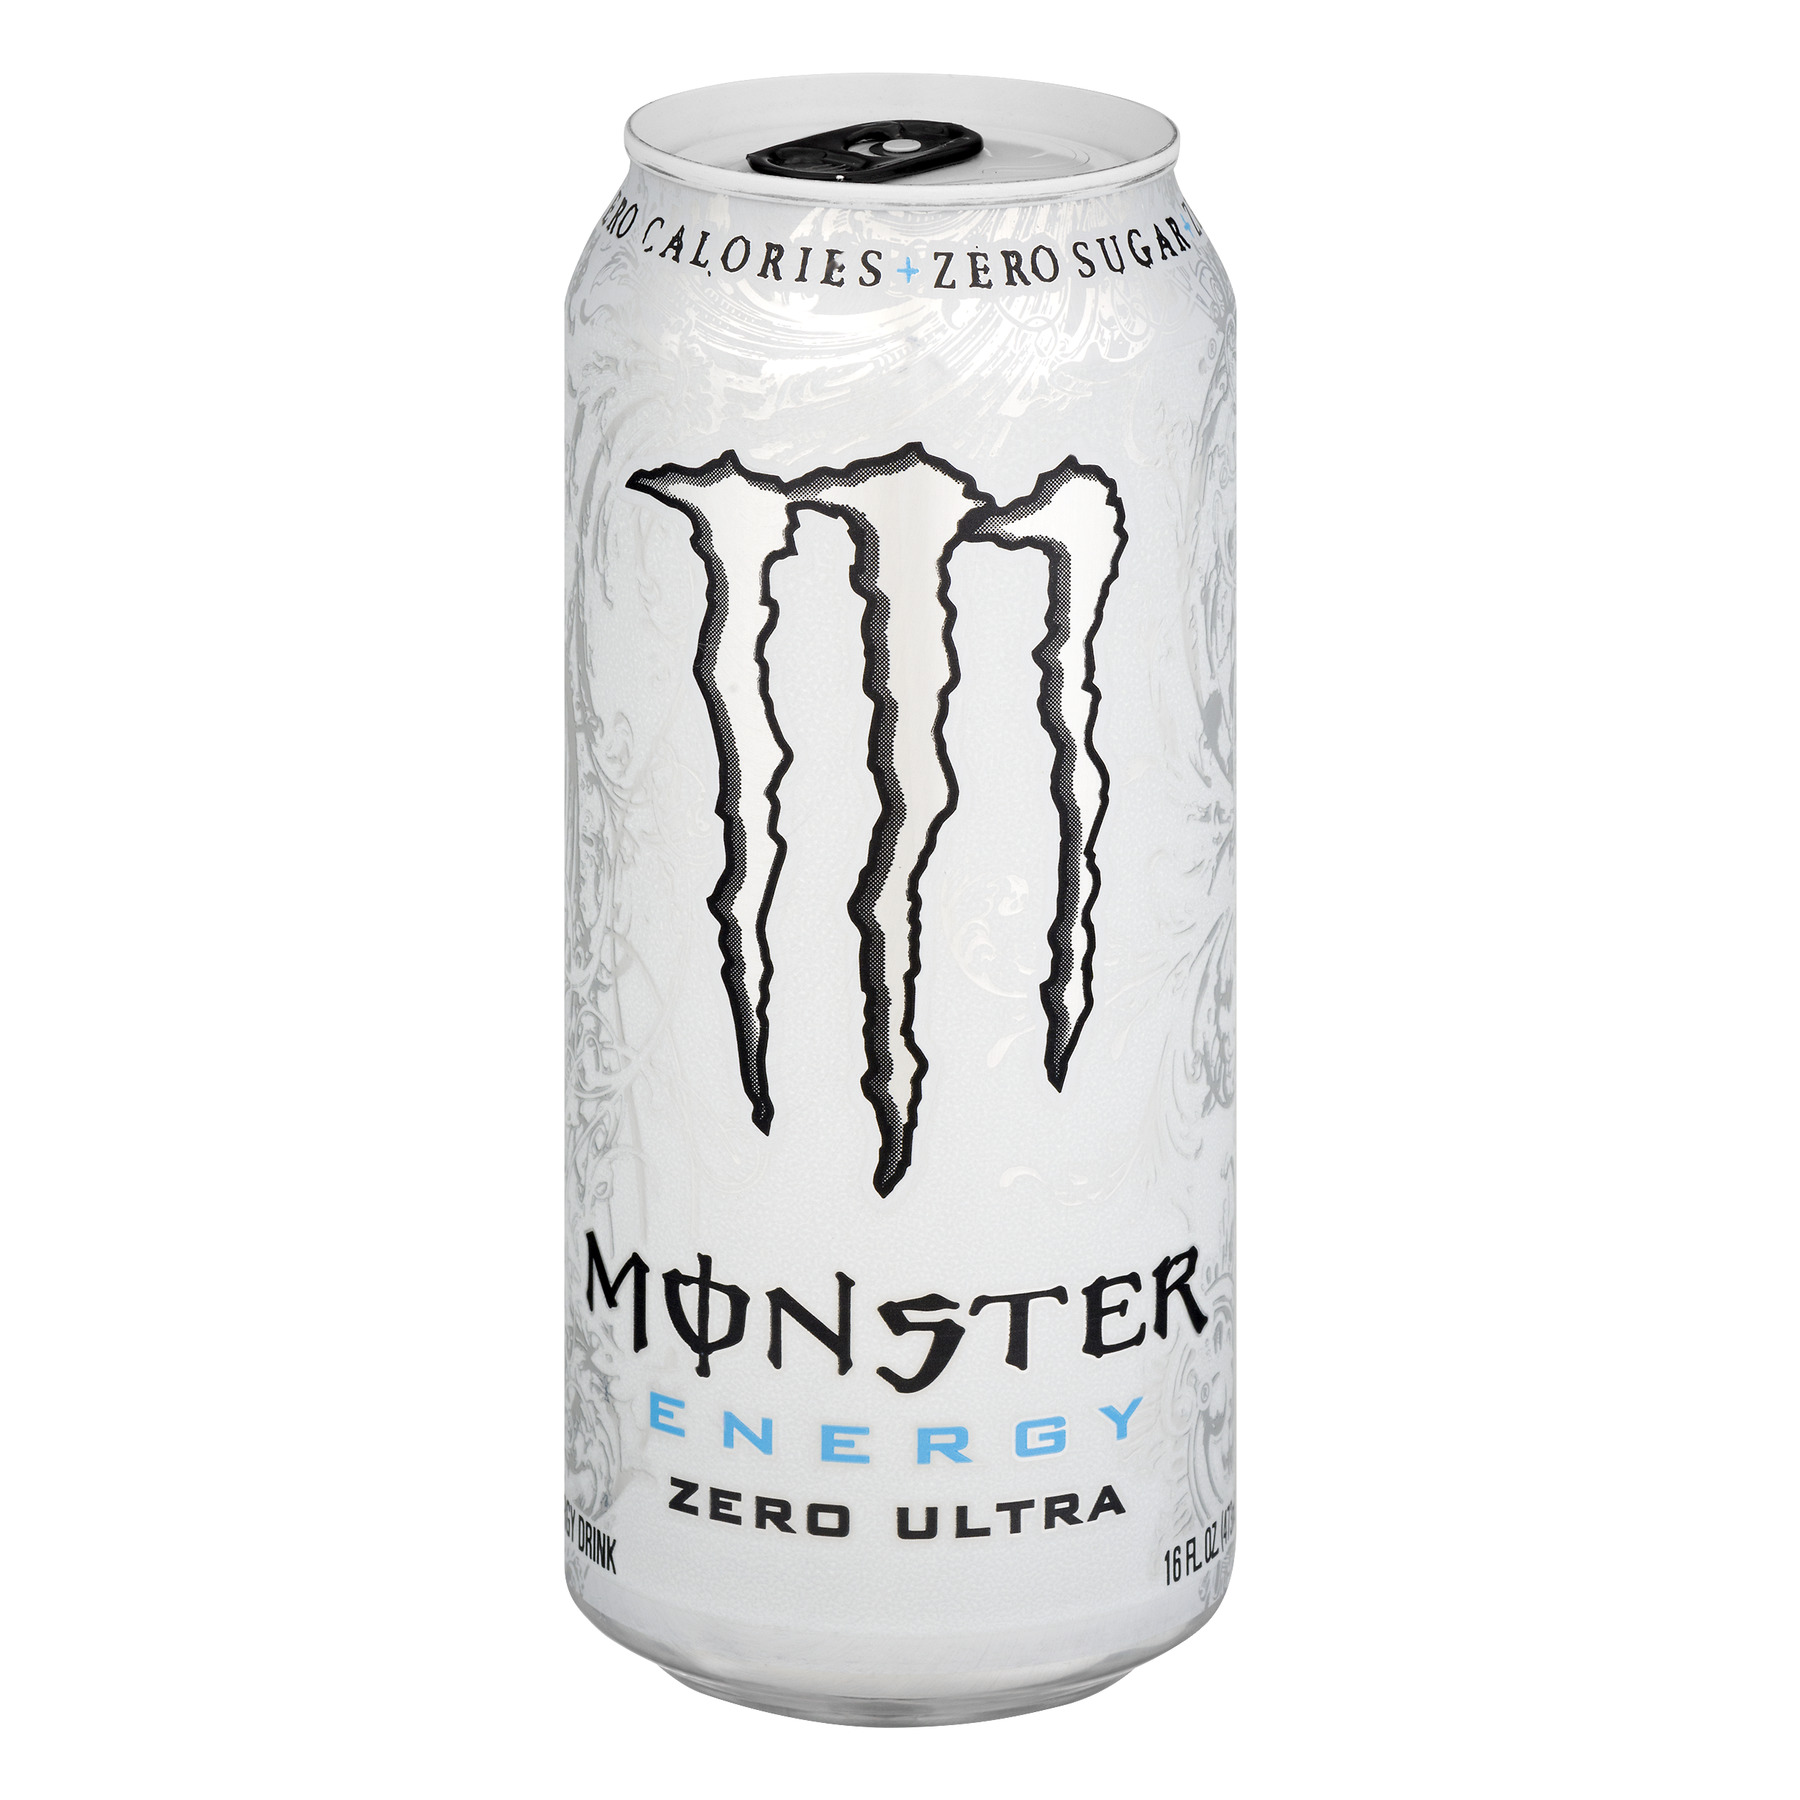 Monster Energy Zero Ultra Energy Drink, 16 fl oz - Walmart.com